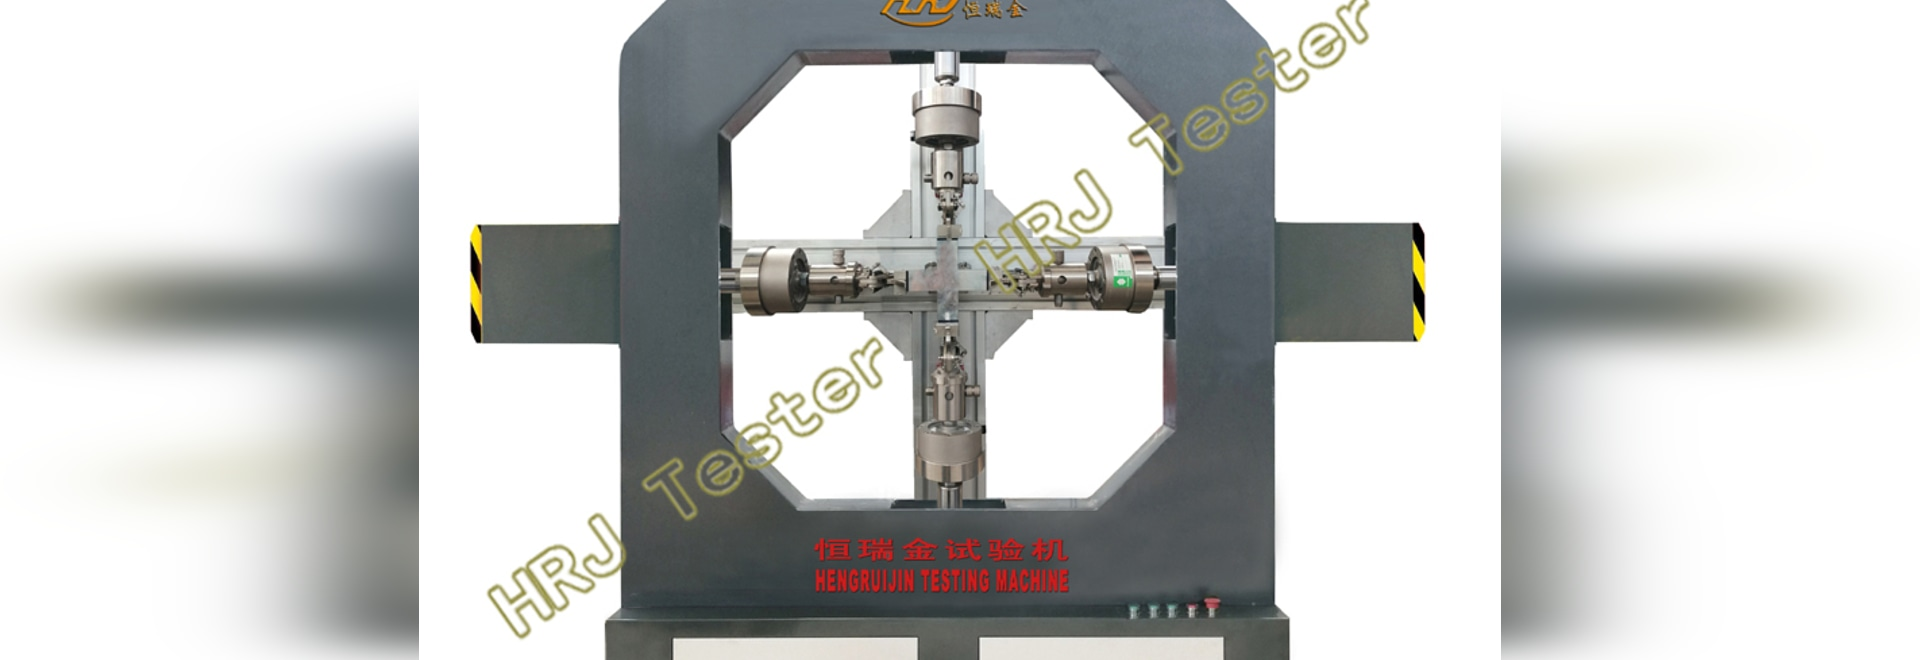 Metallic Materials Biaxial Tensile Test By Using A Cruciform Test Piece